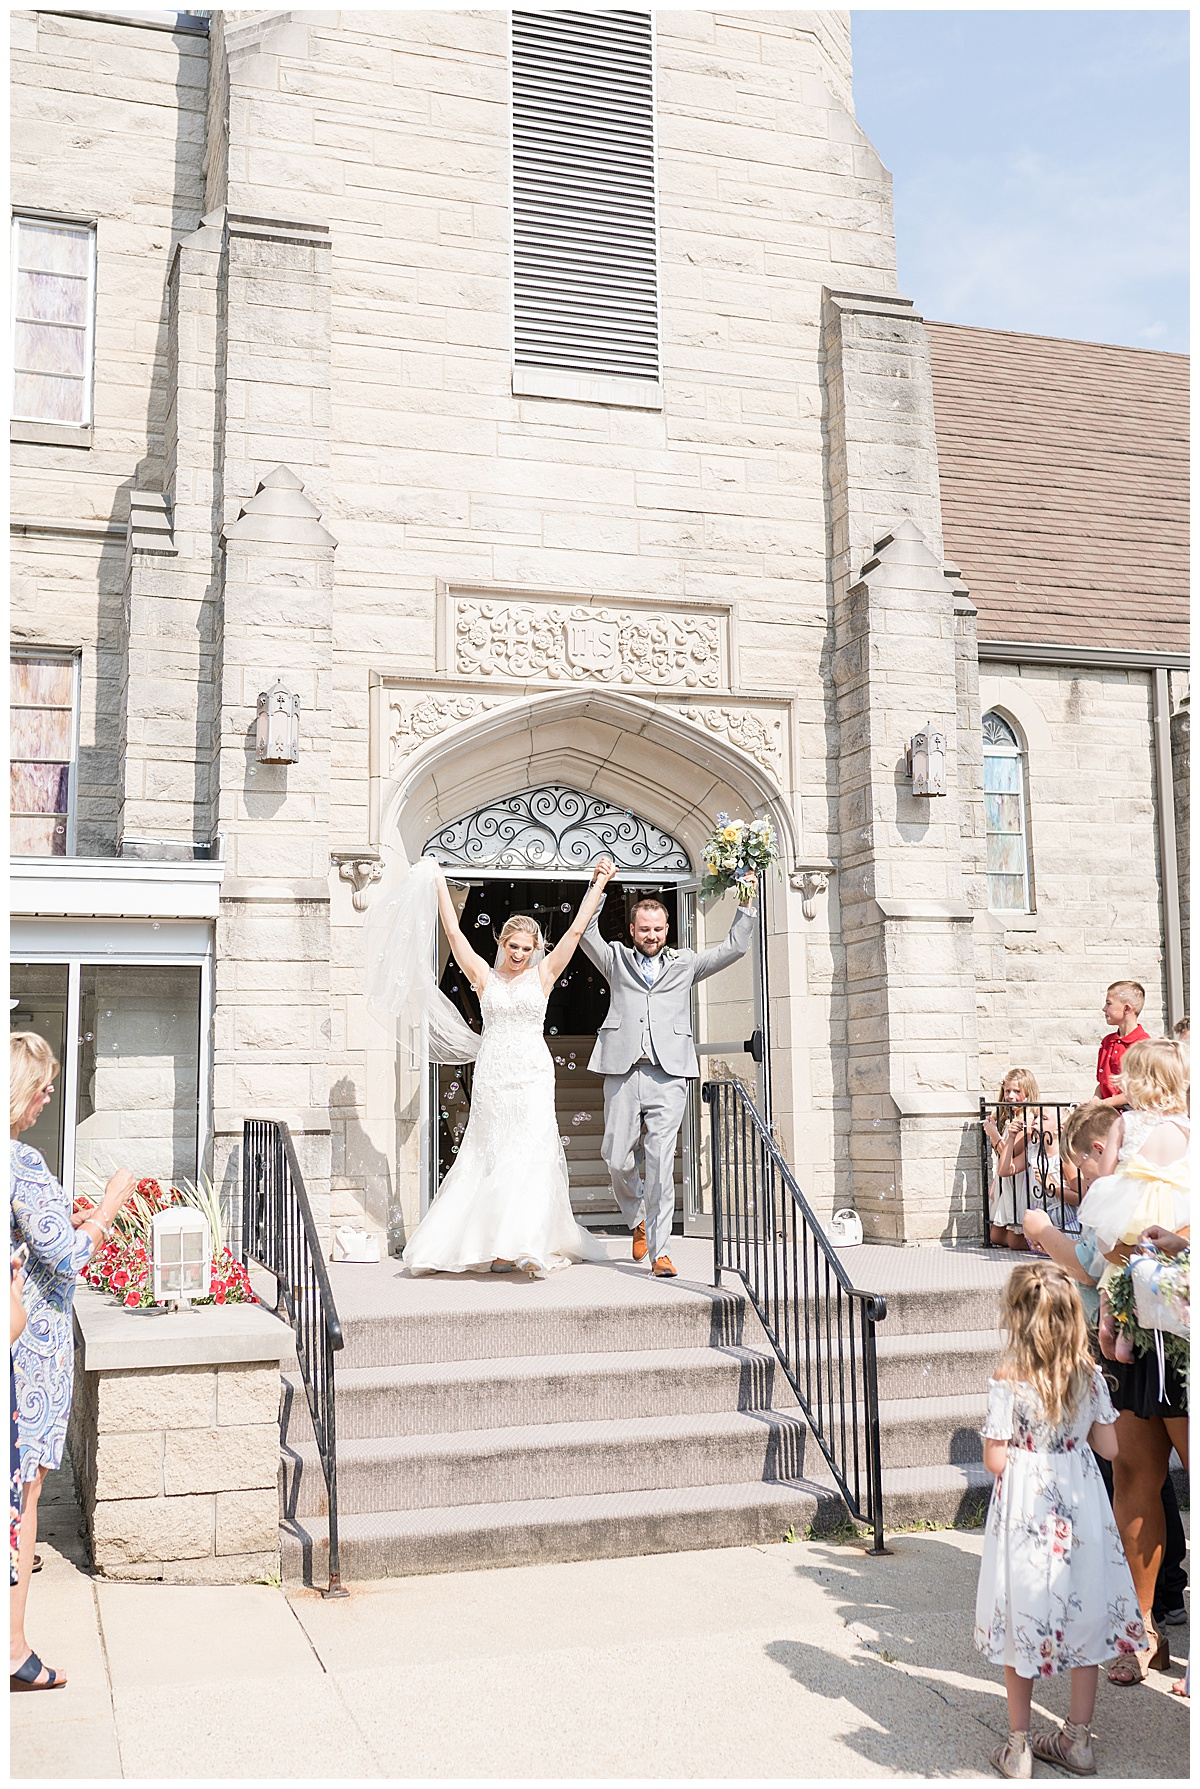 Bride and groom exit after wedding ceremony at Chalmers Community Church in Chalmers, Indiana